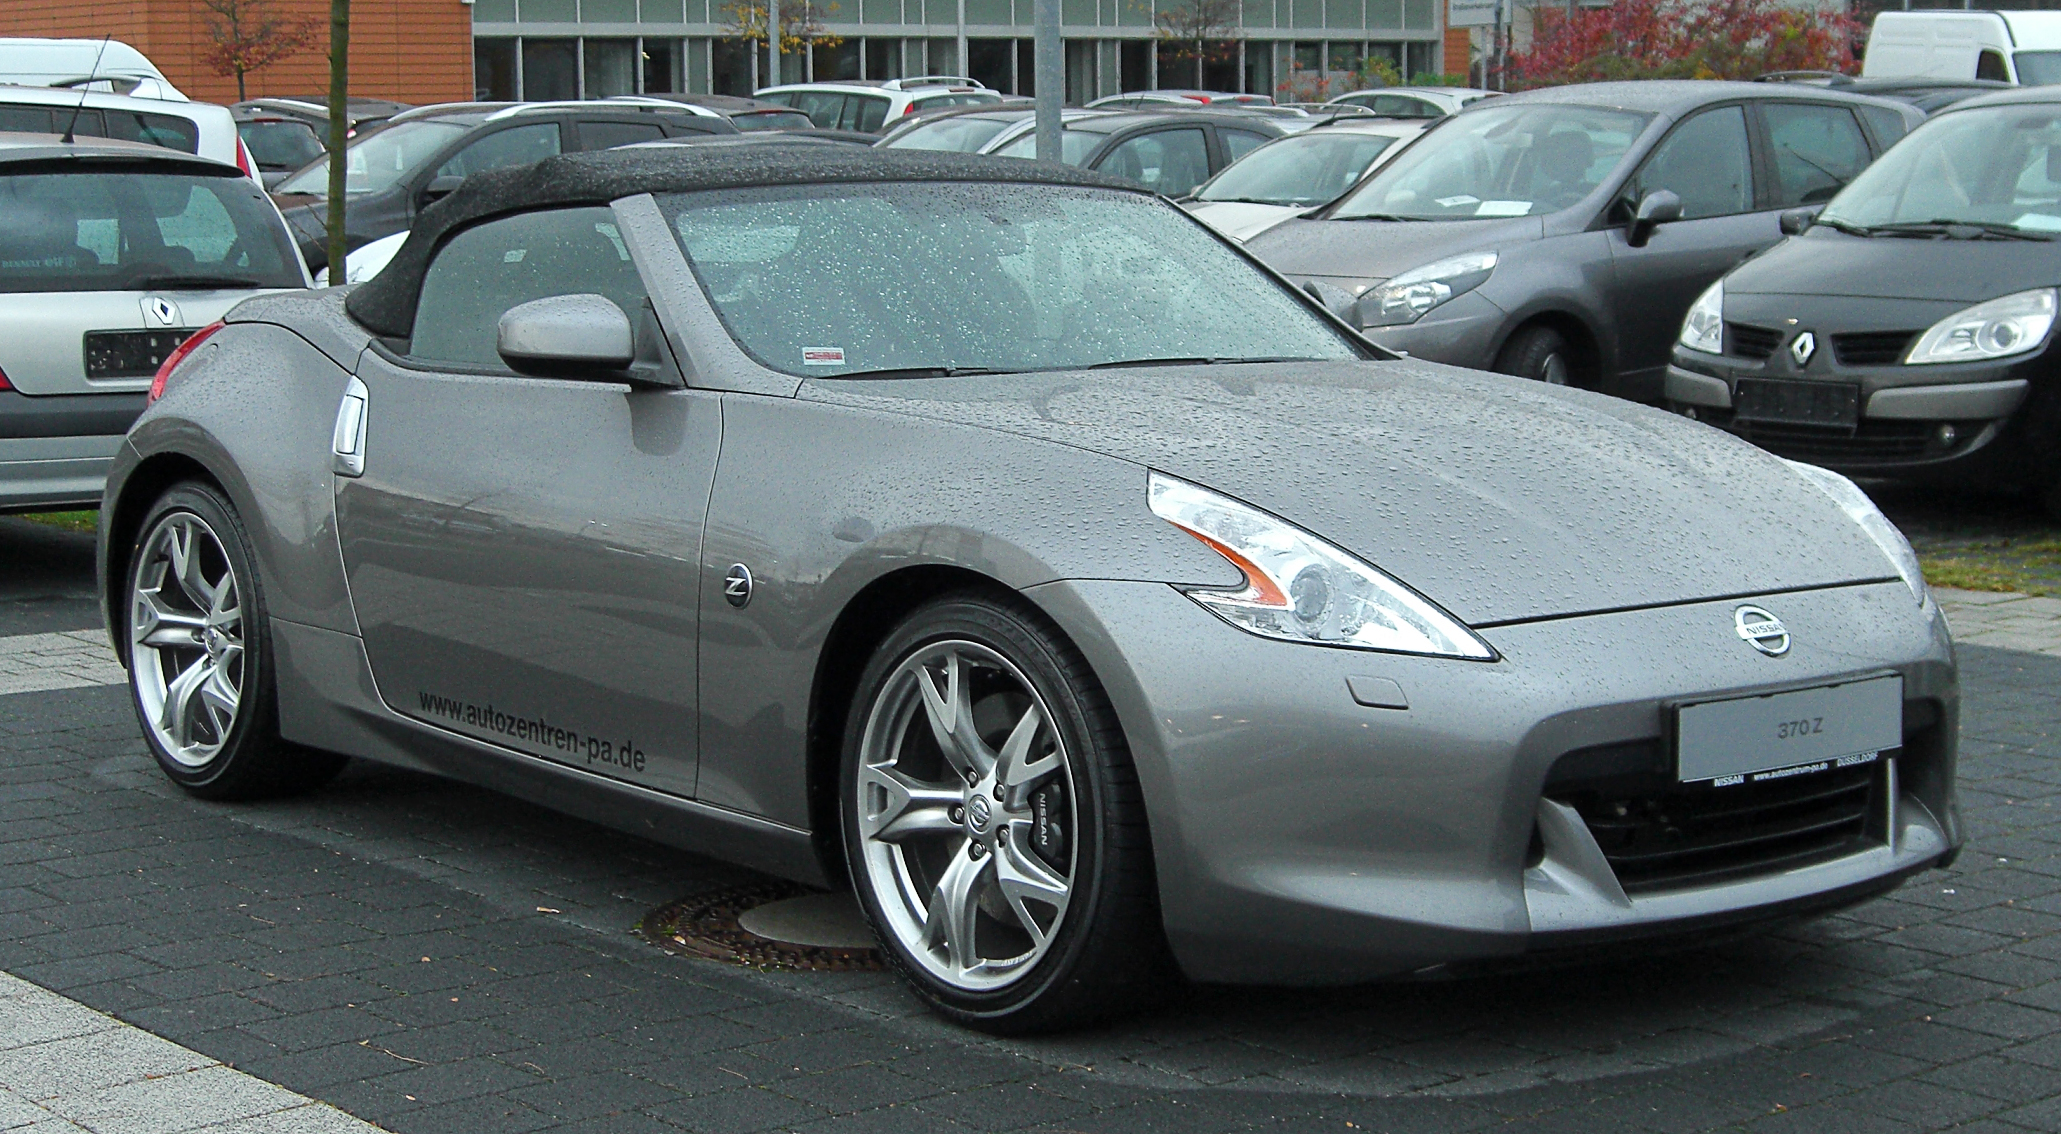 file nissan 370z roadster front wikimedia commons. Black Bedroom Furniture Sets. Home Design Ideas